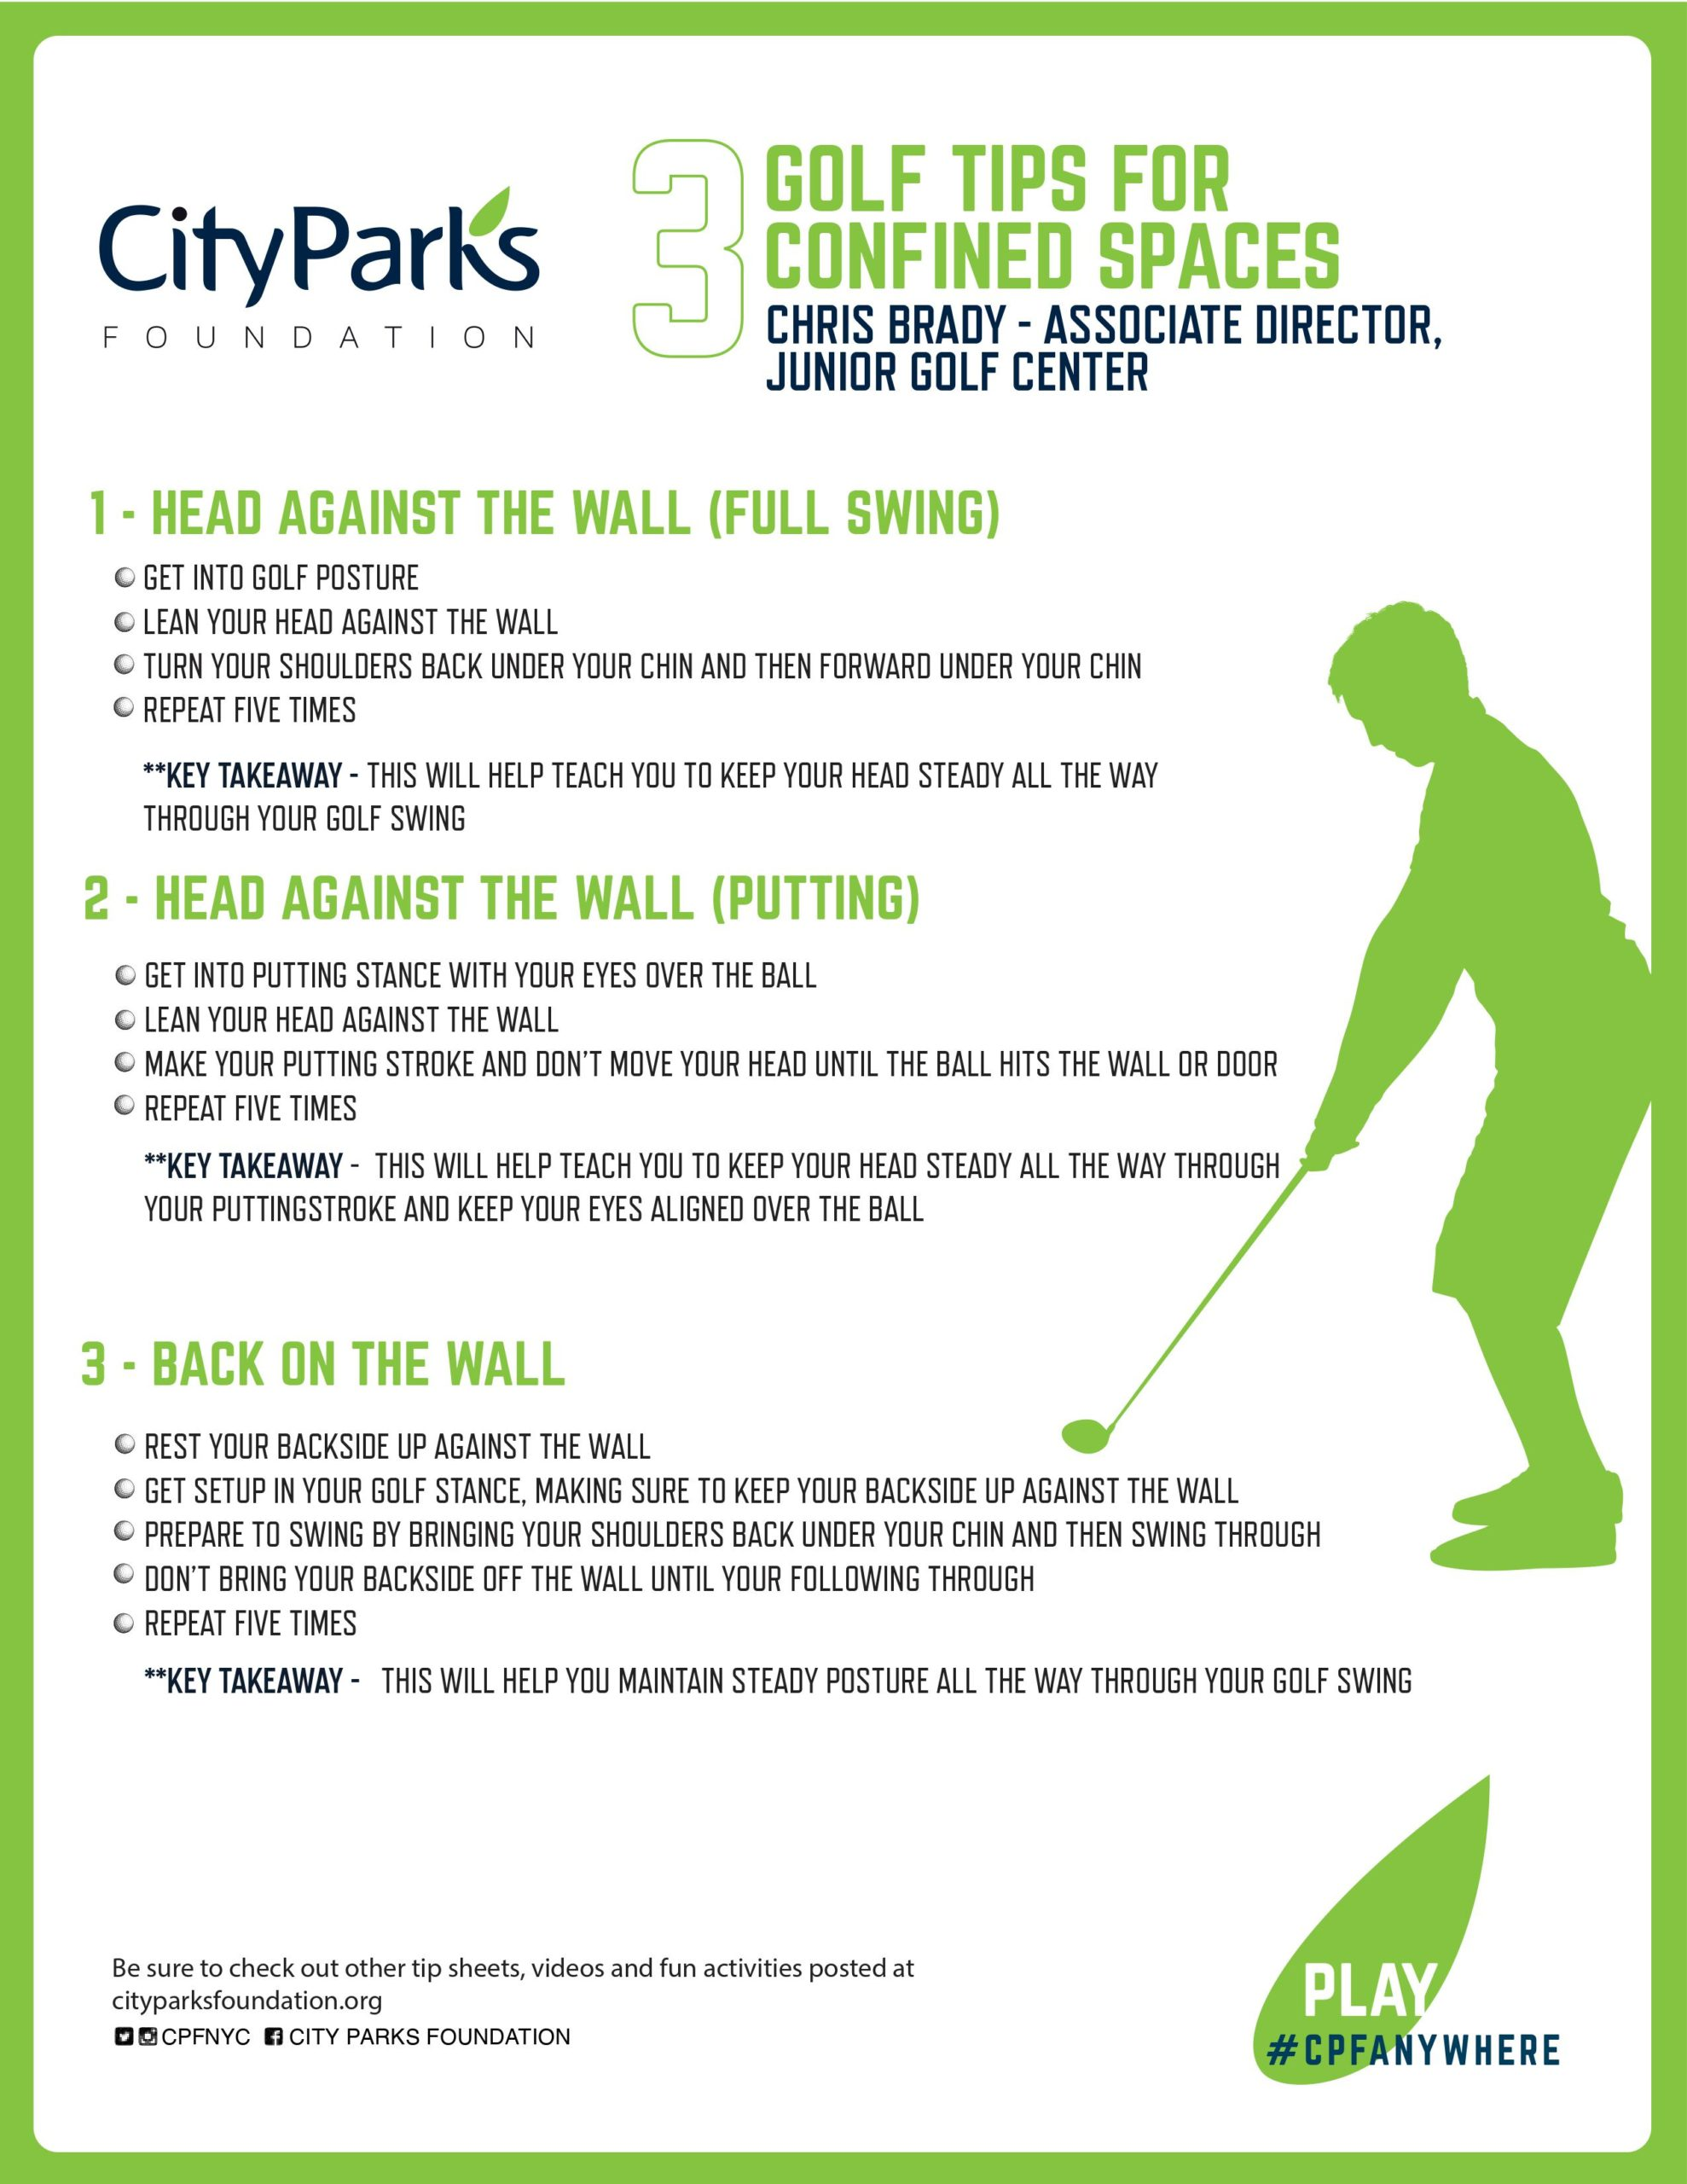 Thumbnail image of a custom tip sheet on how to practice golf indoors